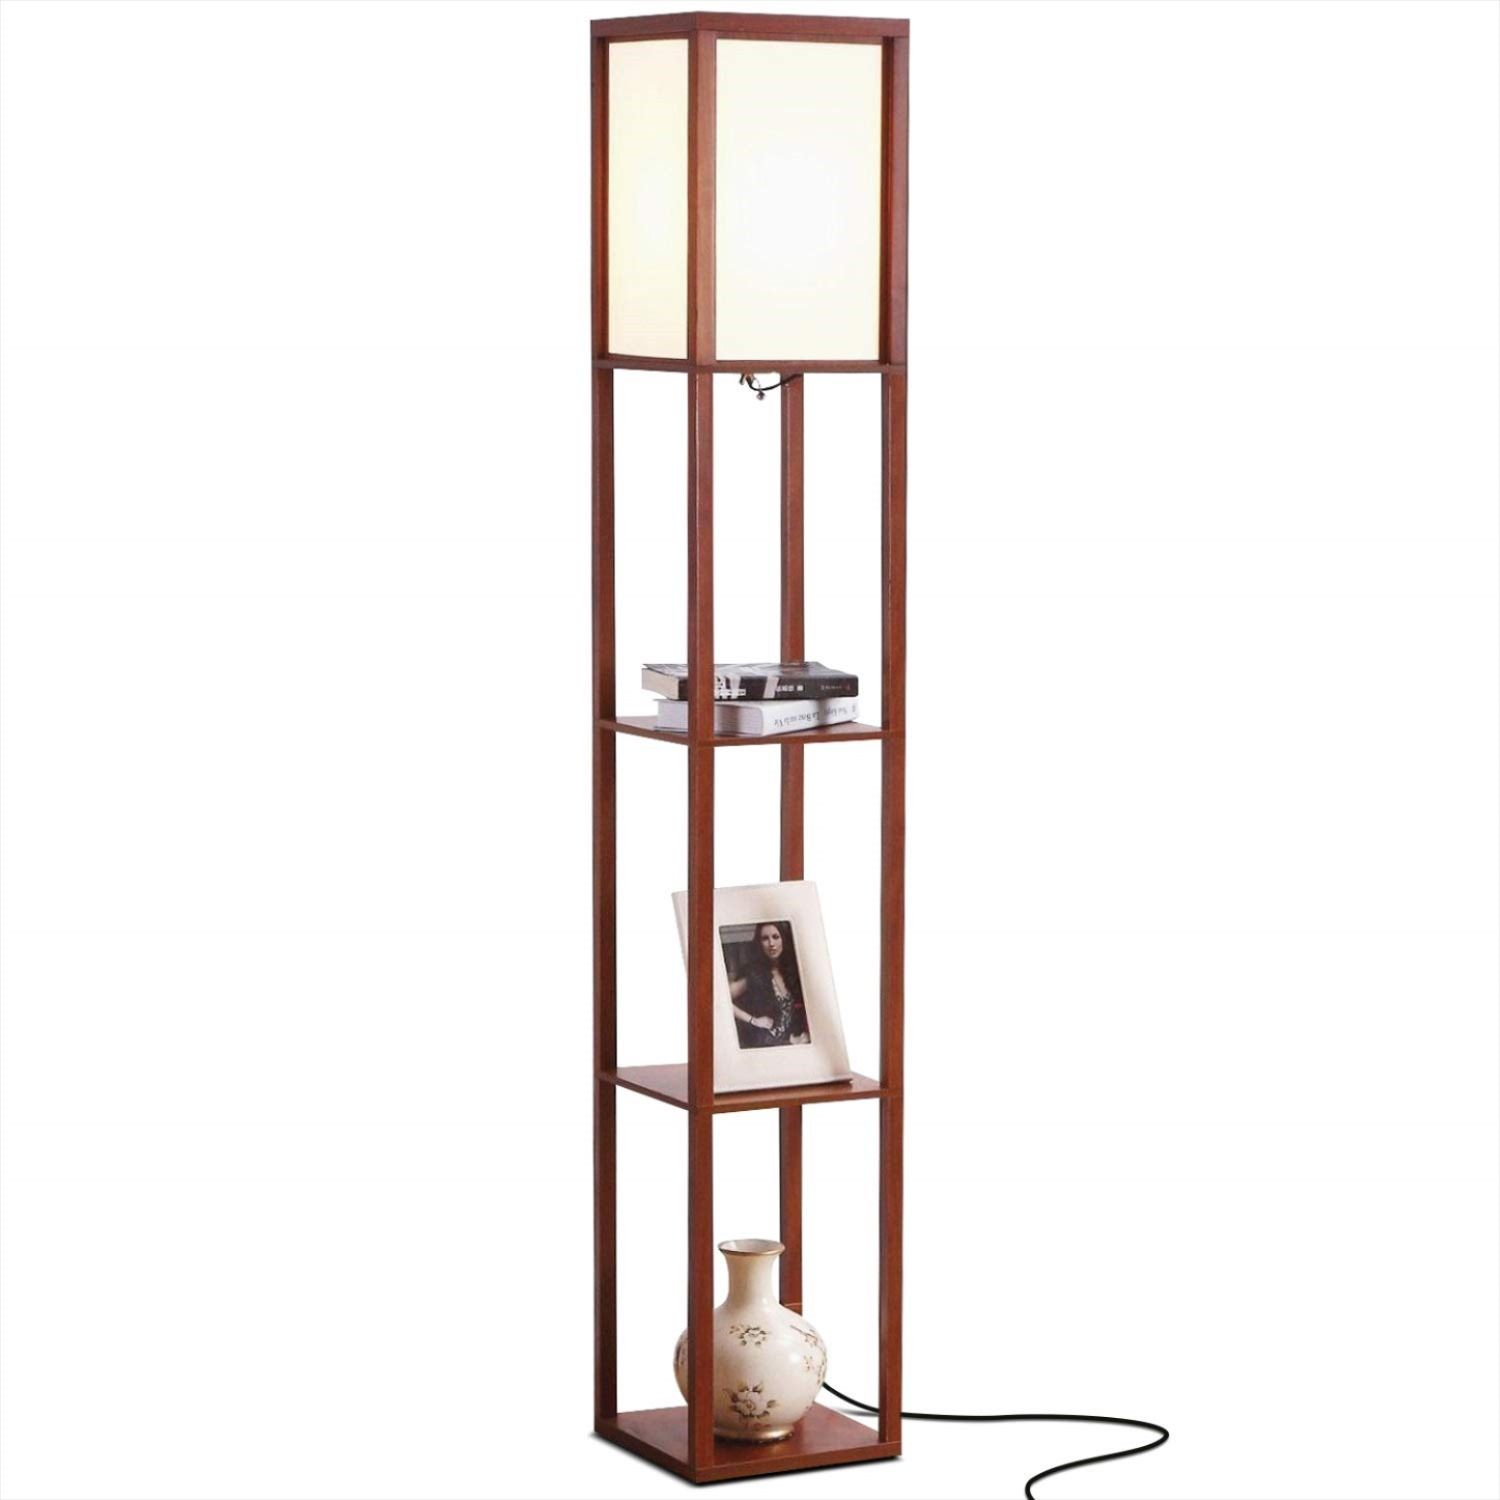 Brightech Maxwell Modern LED Shelf Floor Lamp Skinny